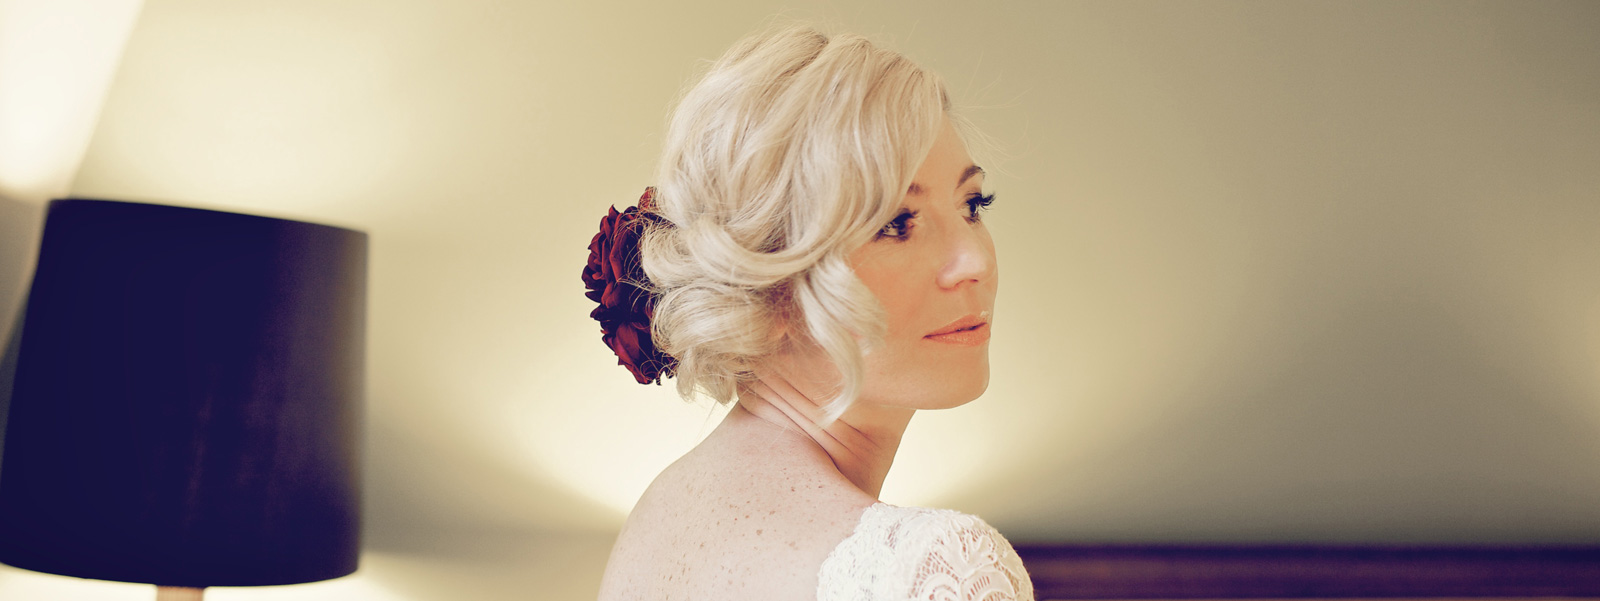 wedding-make-up-and-hair-uk6